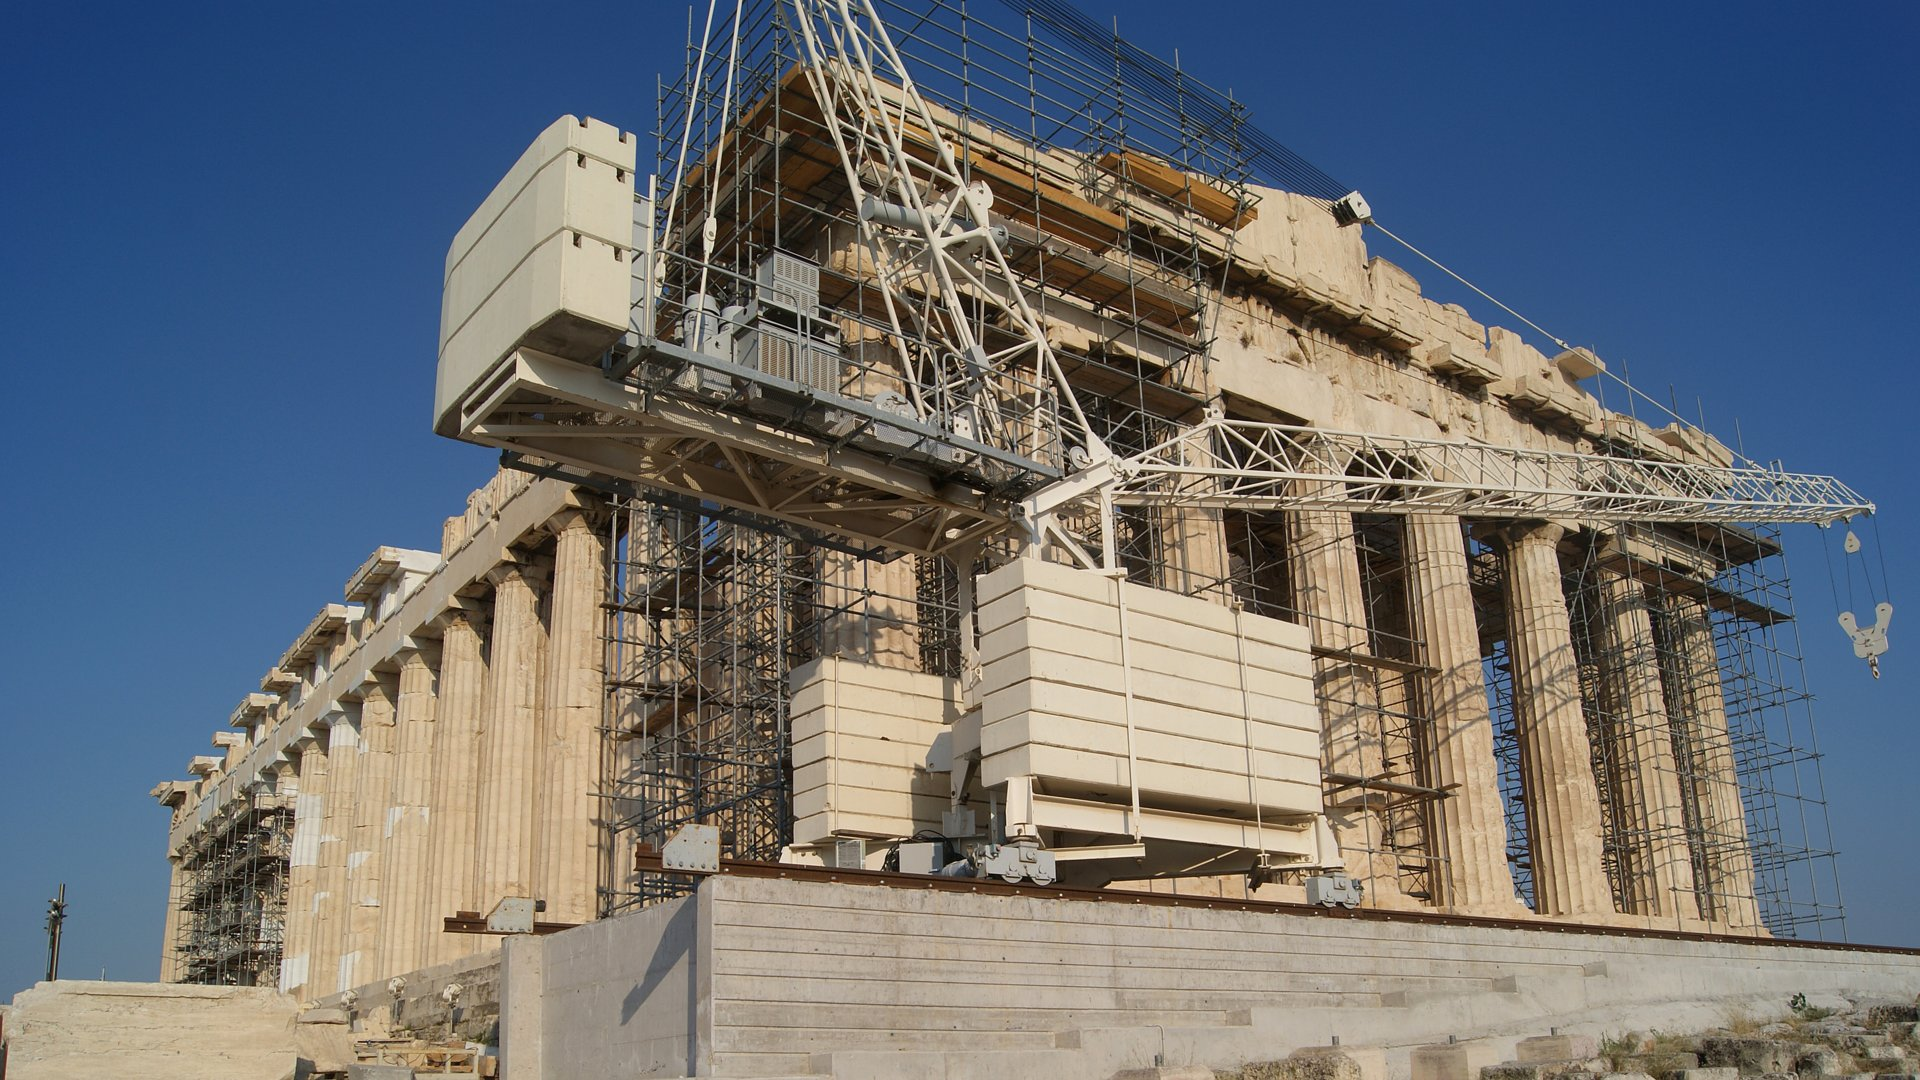 the parthenon athenian victory essay The parthenon by tracy swangler the parthenon is one of the many buildings on the acropolis of athens the original building on the site was built as an offering to honor the goddess athena because the people of ancient athens believed that she watched over their city.